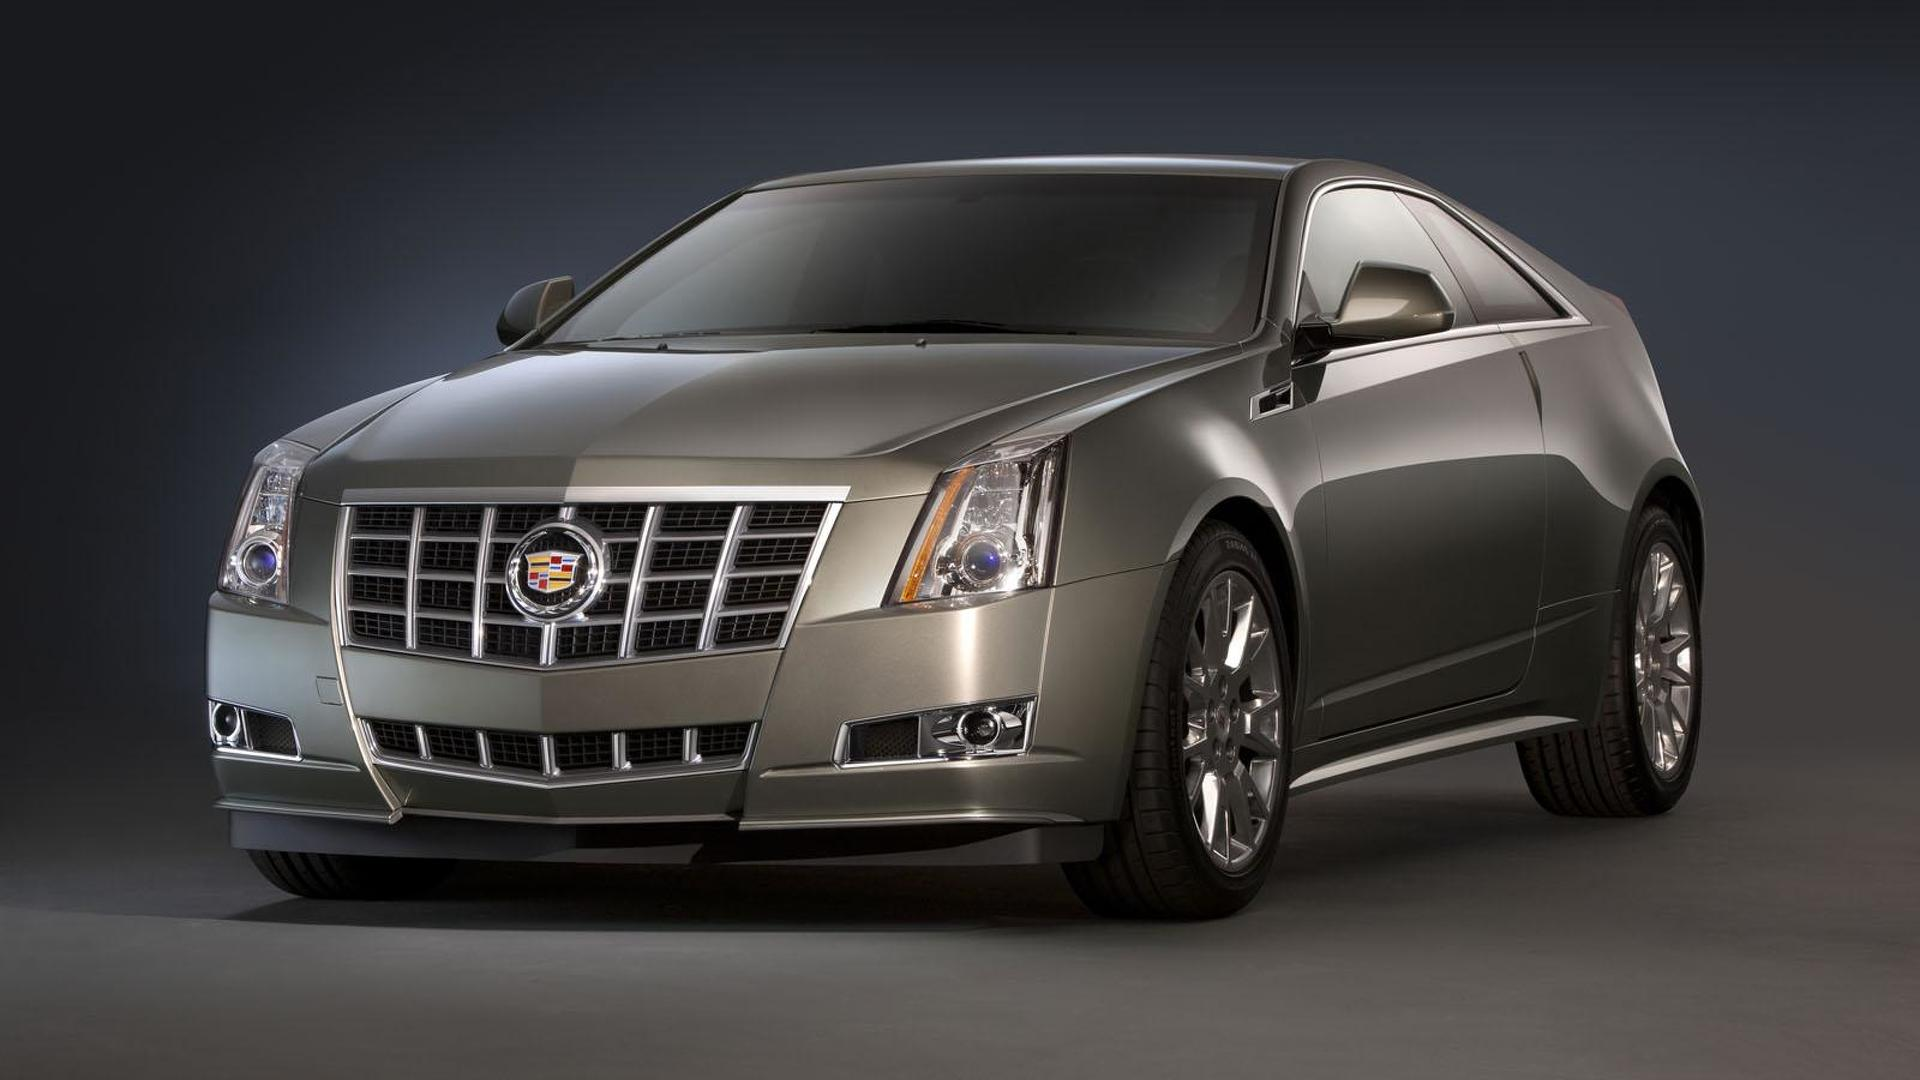 cts awd coupe in used for sale cadillac va norfolk premium